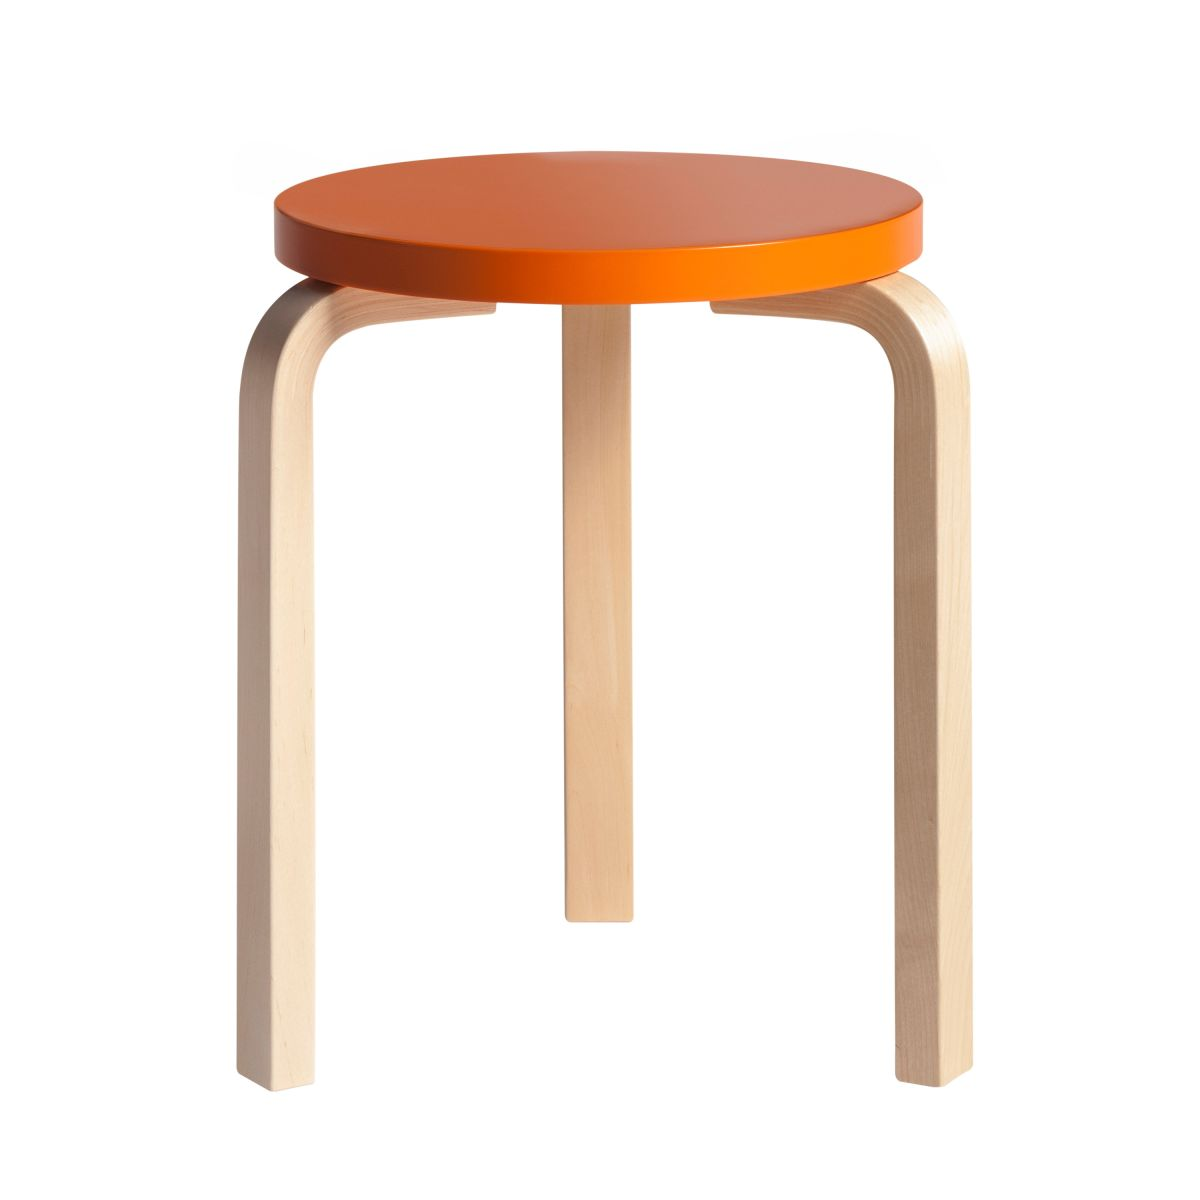 Stool 60 clear lacquer orange top